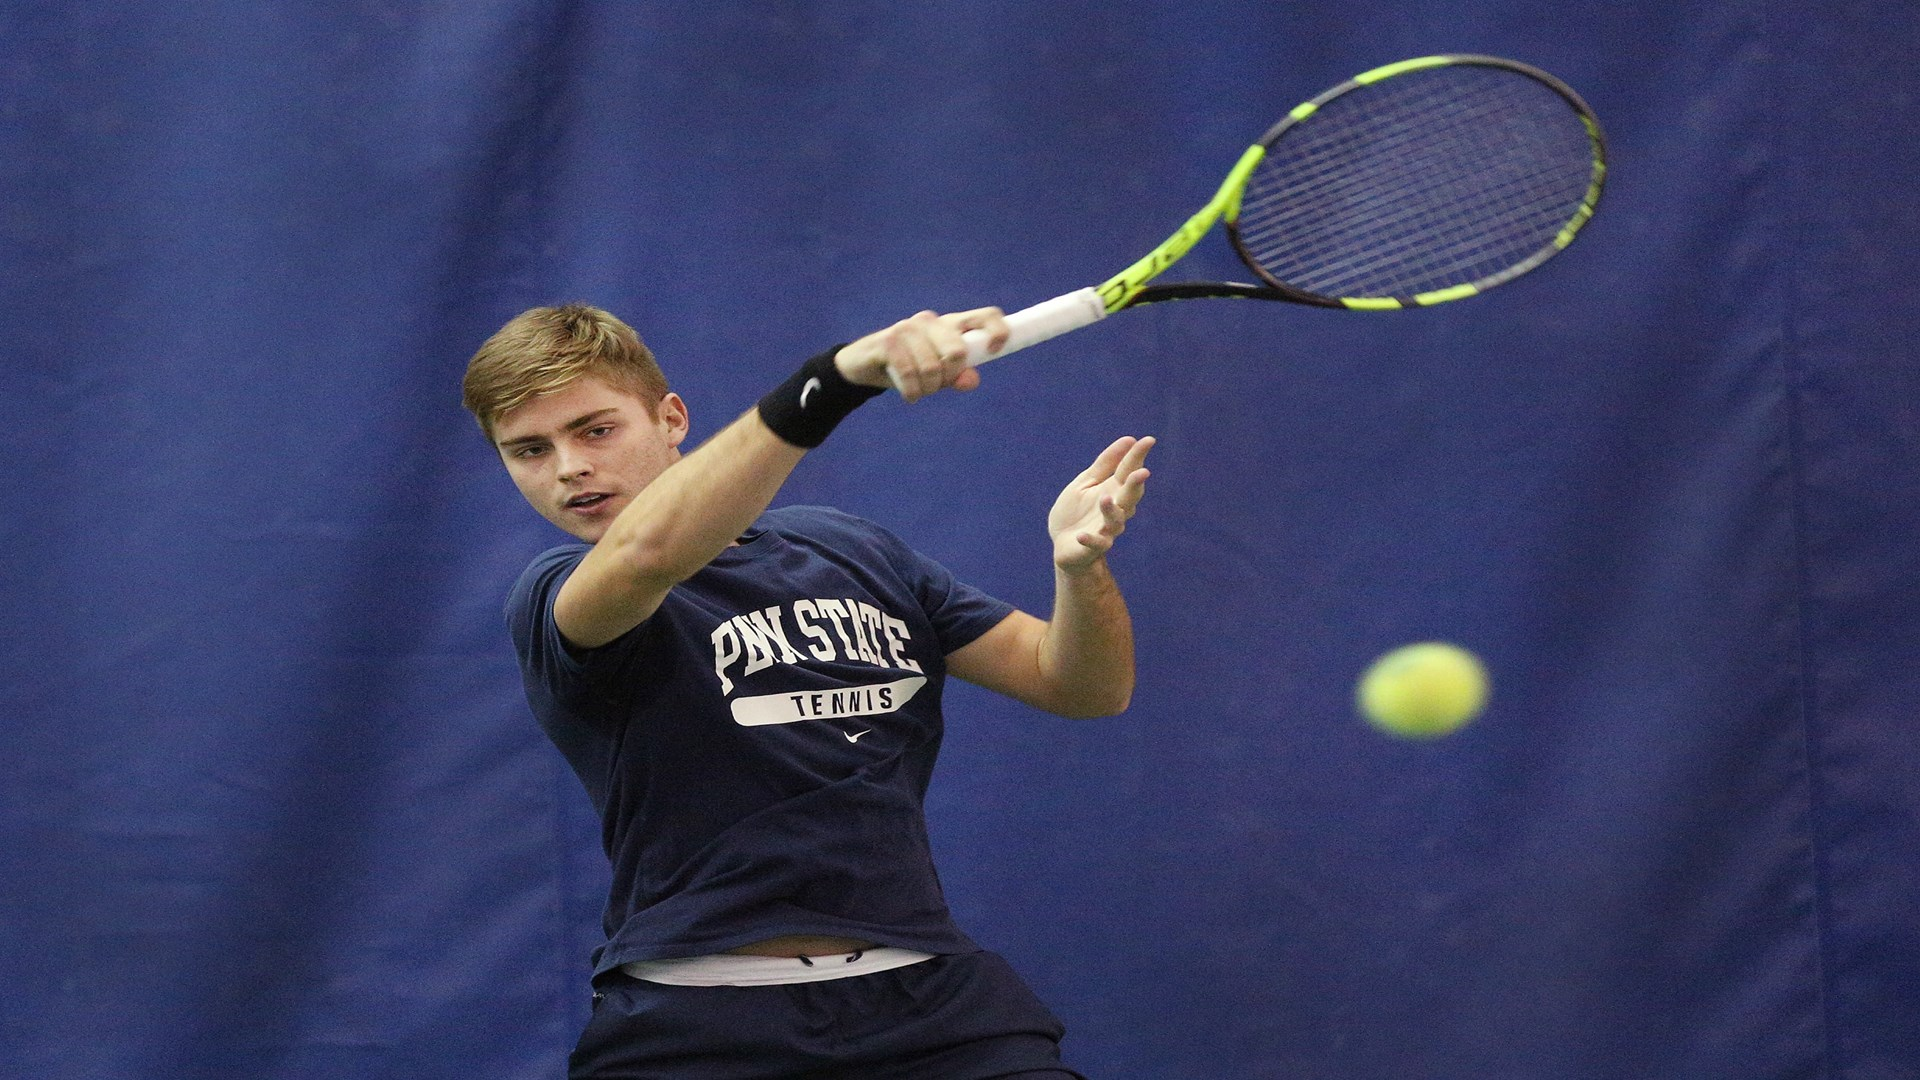 Nittany Lions Continue Success at Day Three of ITA ...